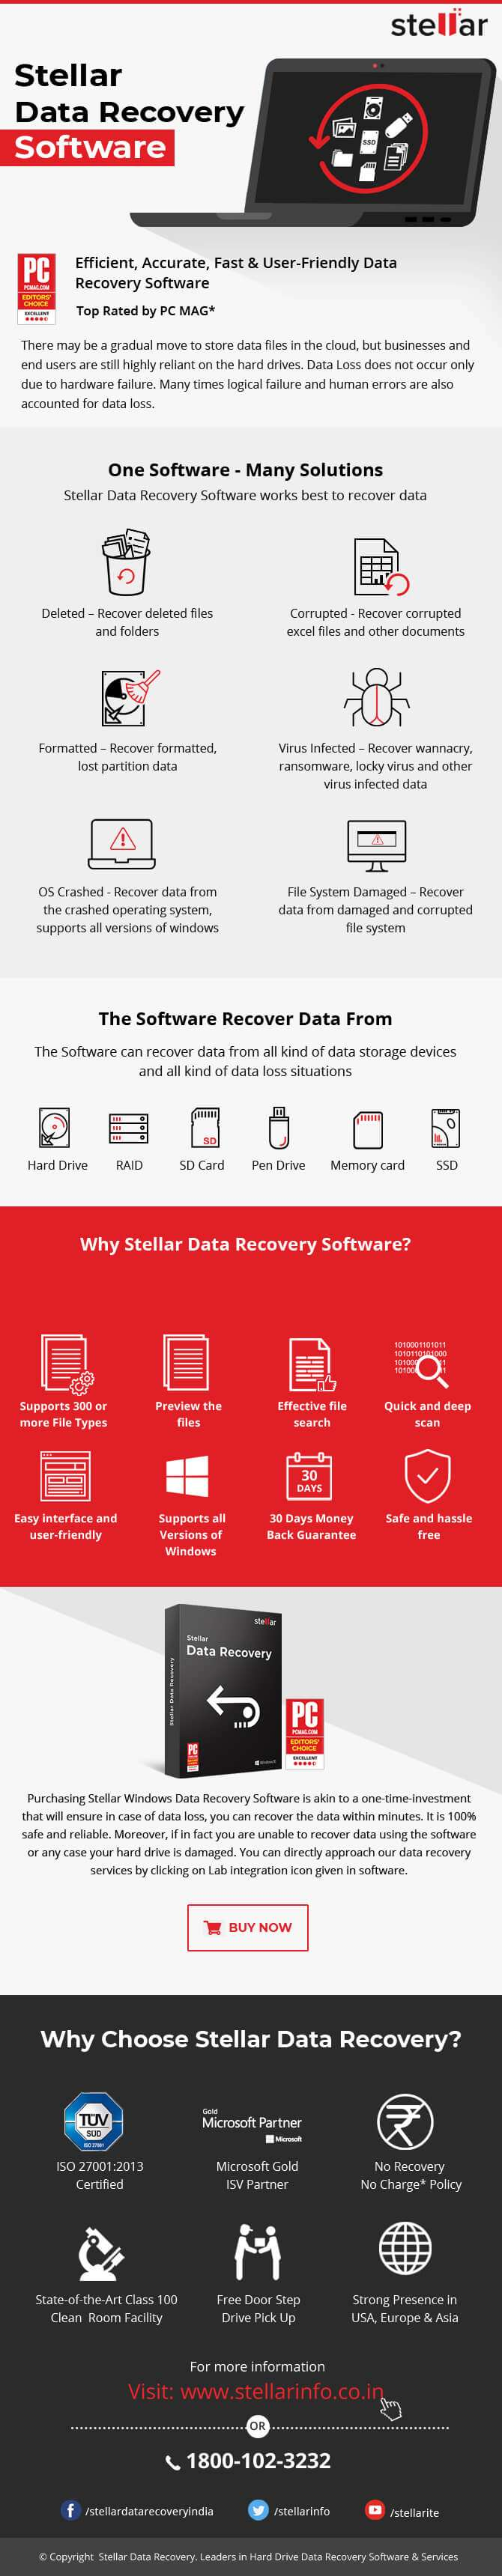 Stellar Data Recovery Software for Windows